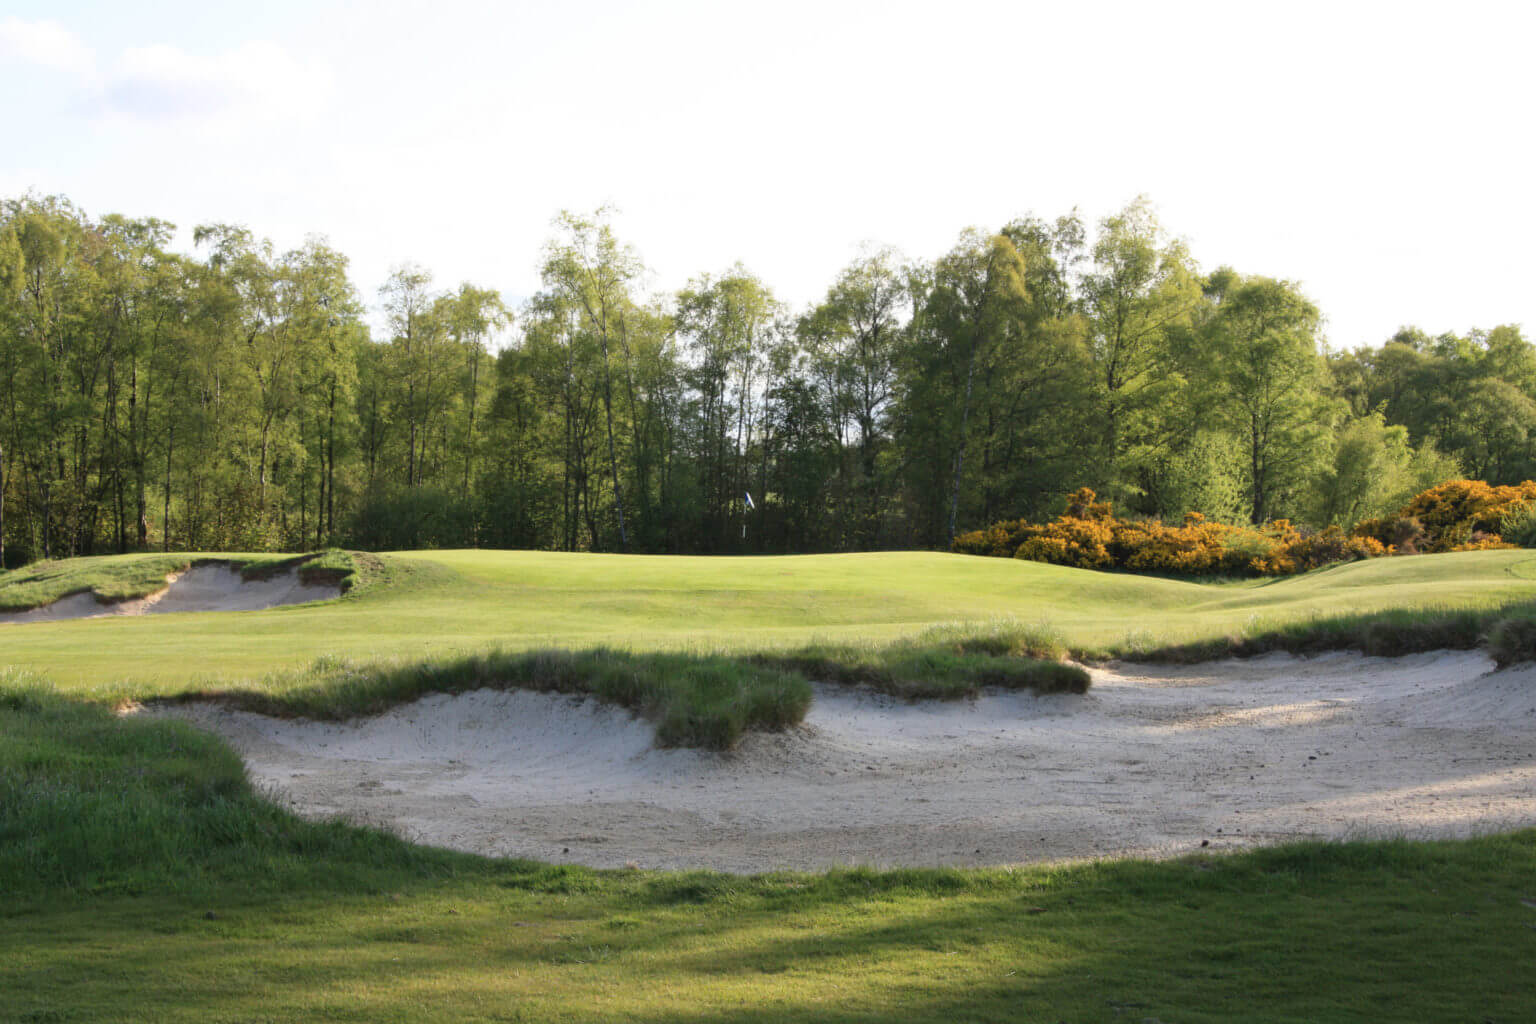 Image of a bunker and first green at Duke's Golf Course